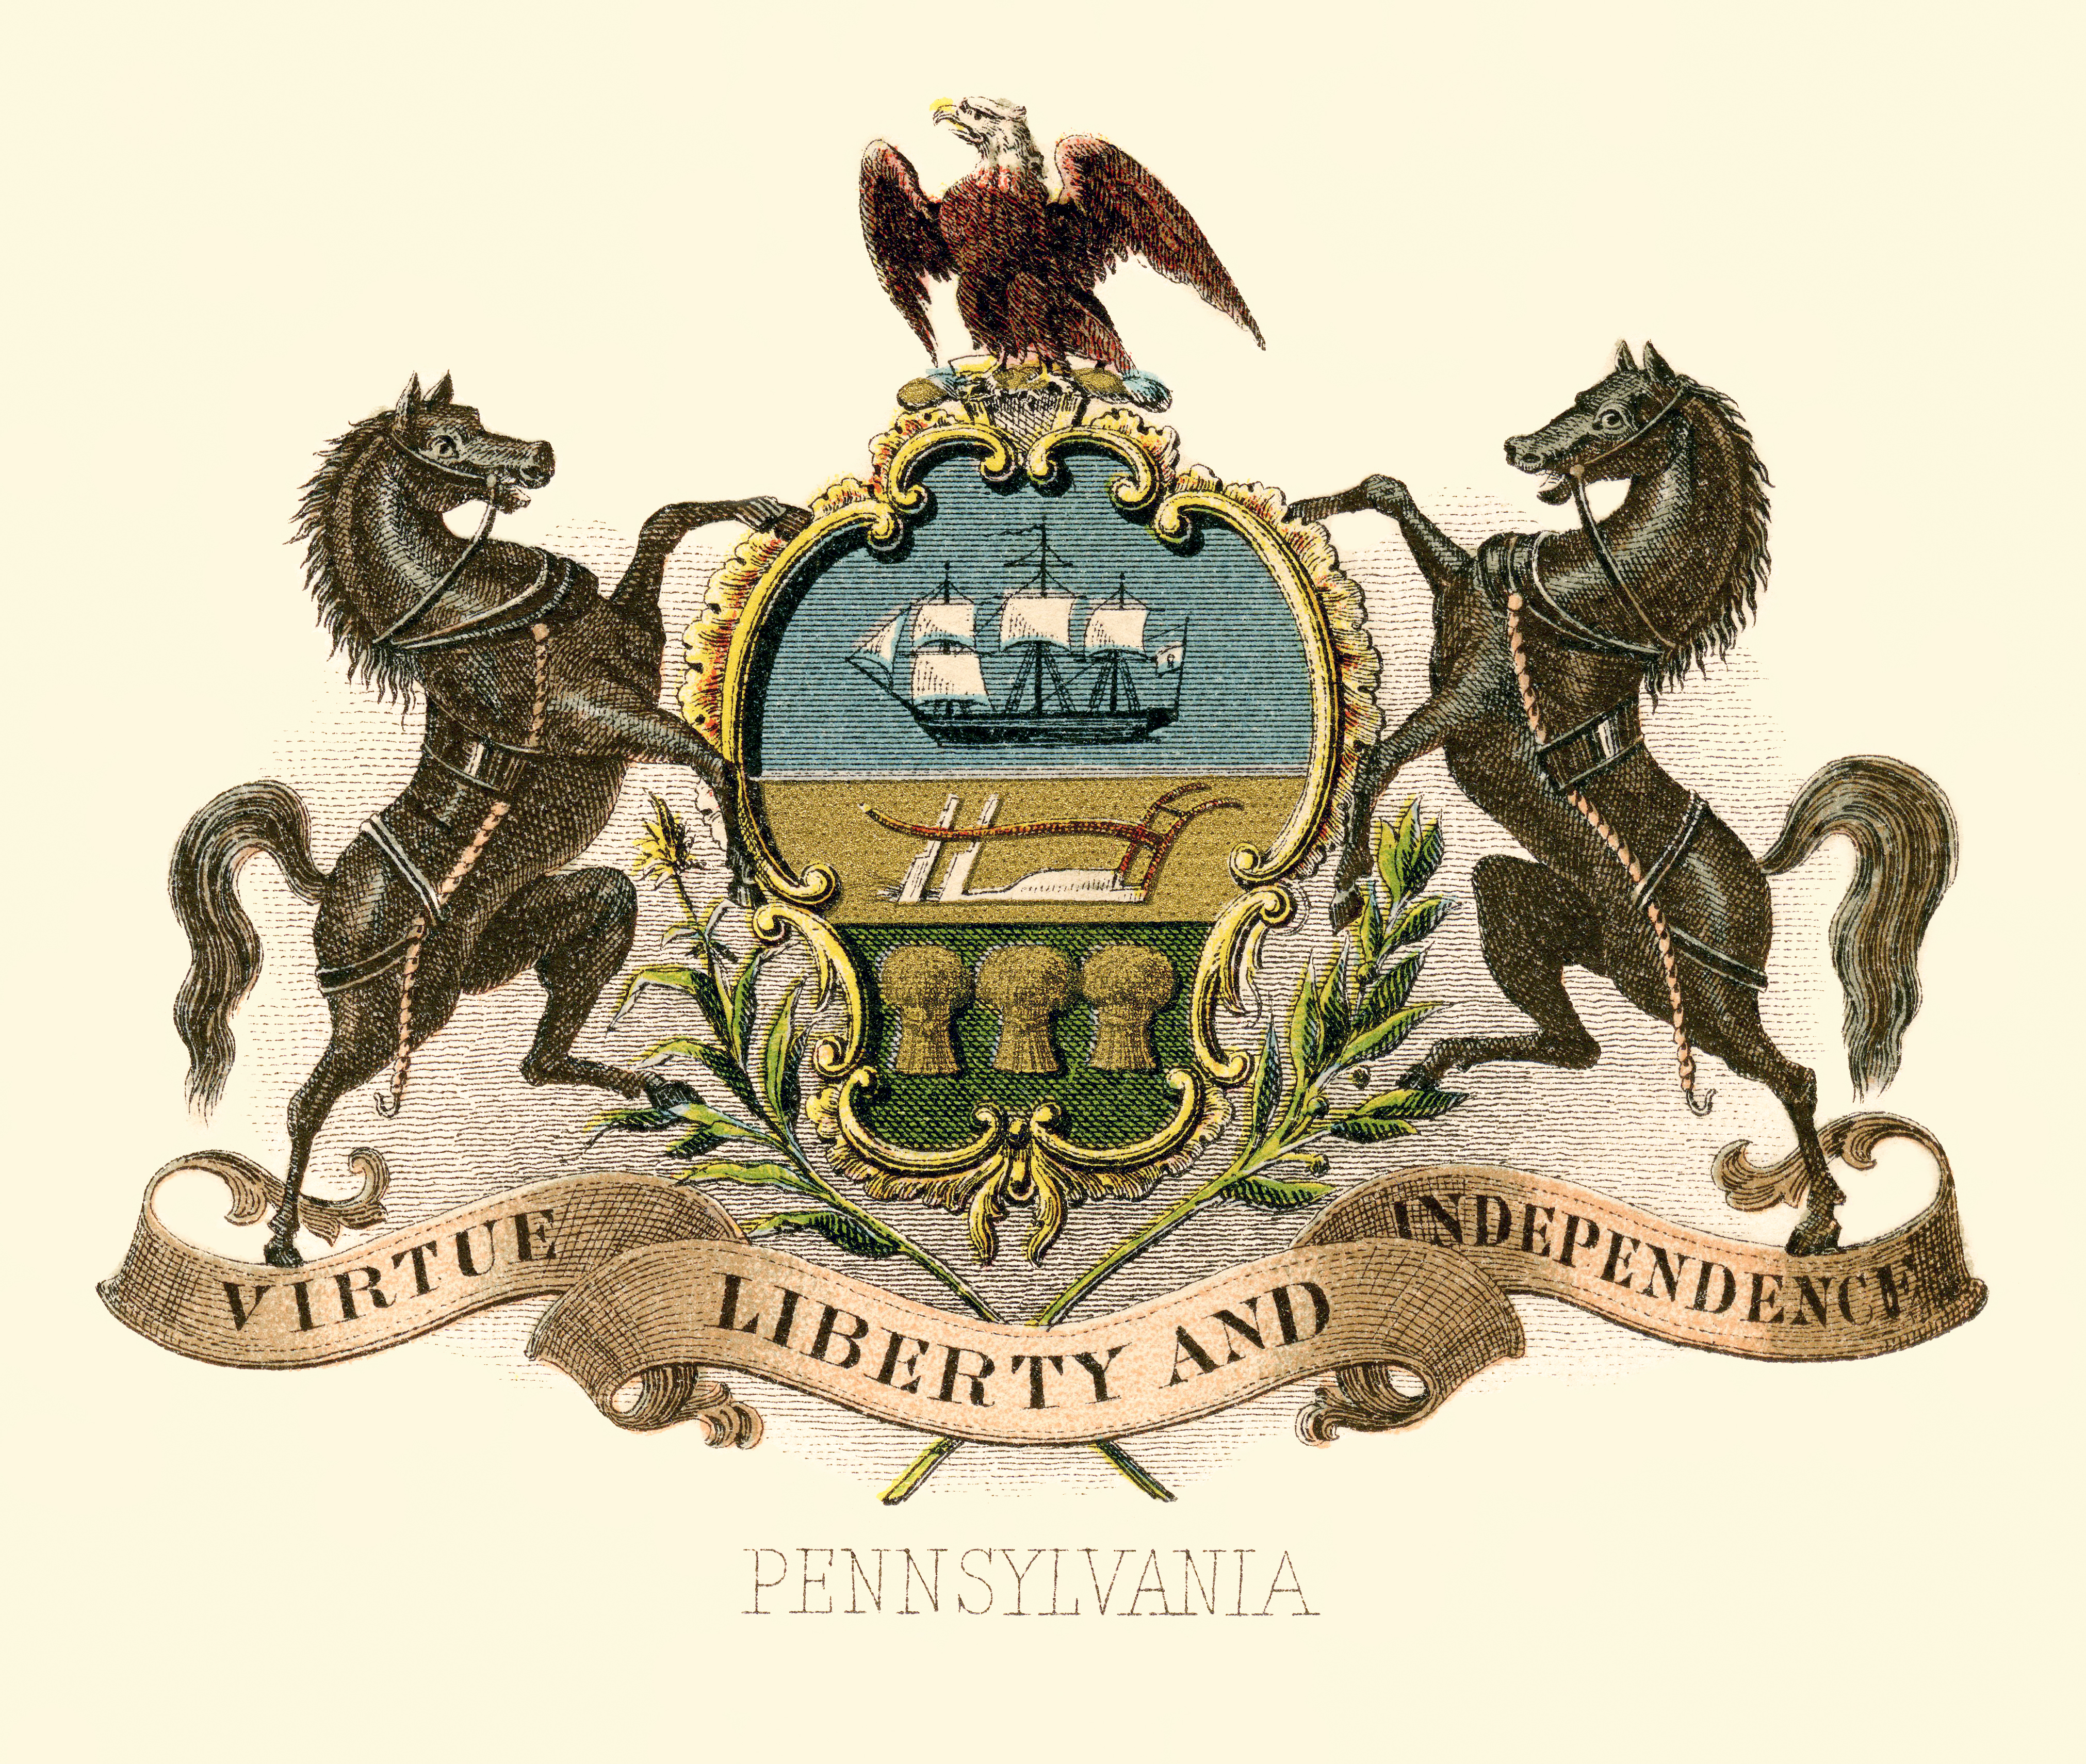 Pennsylvania State Coat Of Arms Illustrated 1876